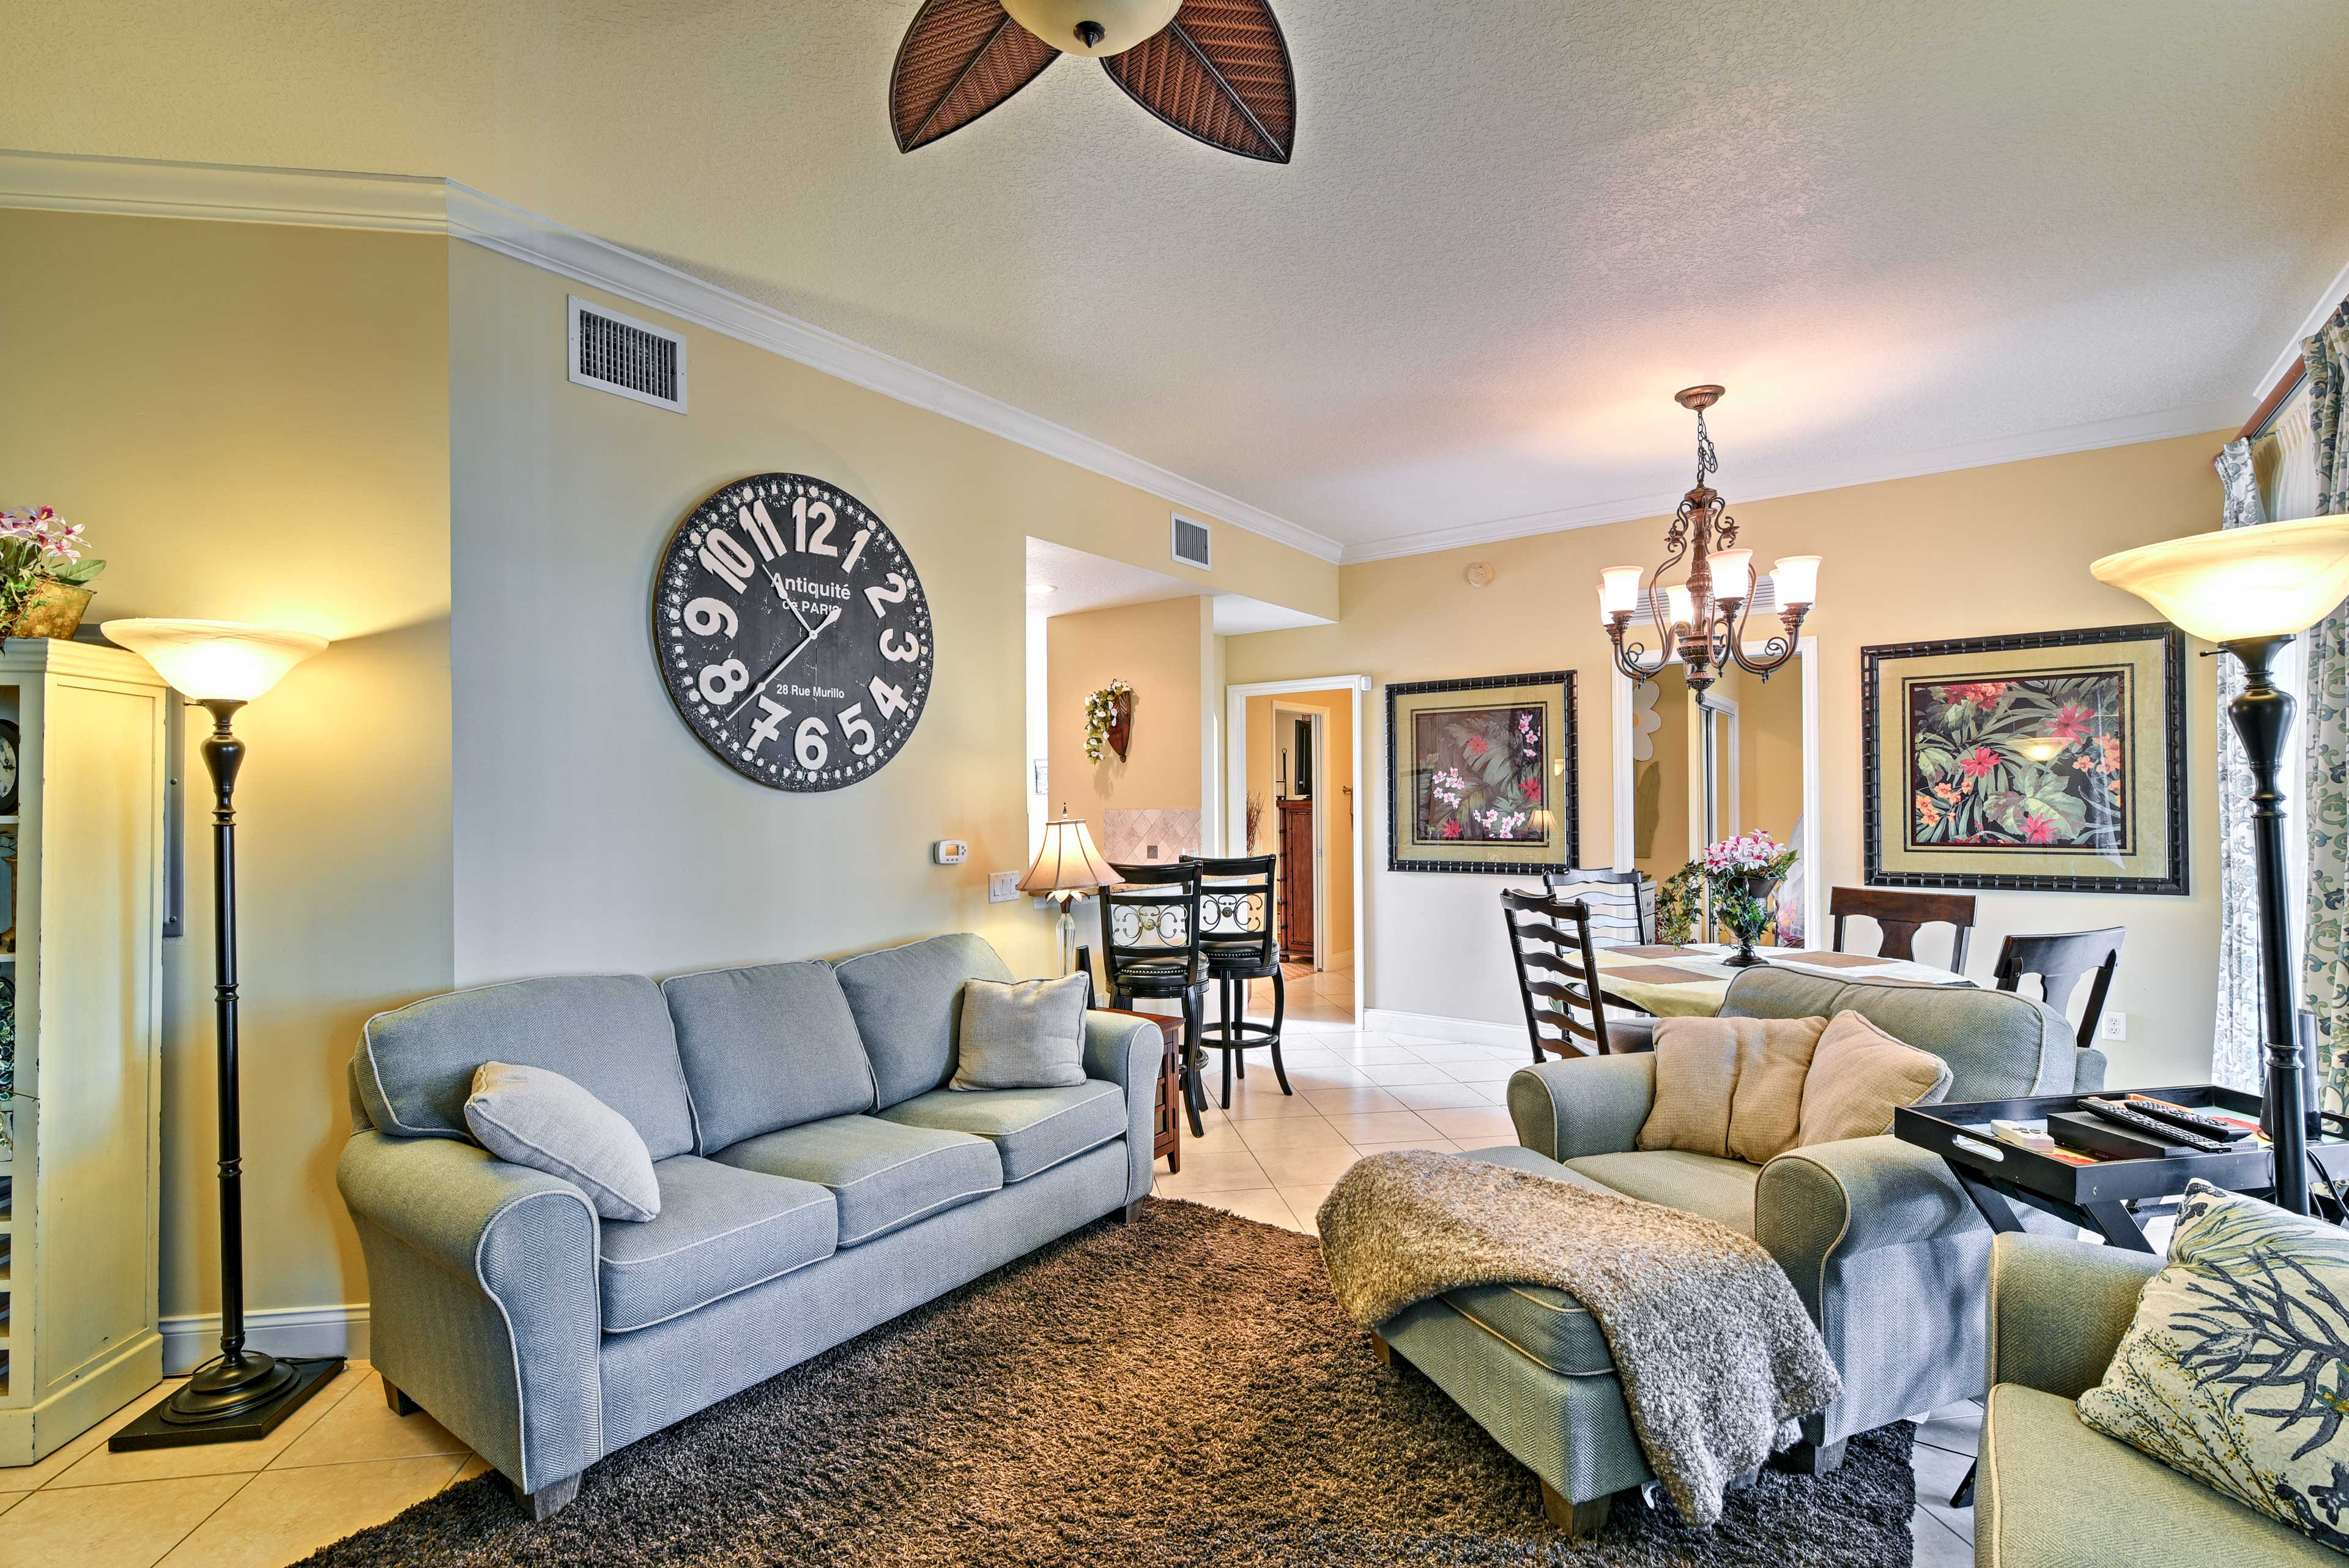 Living Room | Additional Accommodations Available